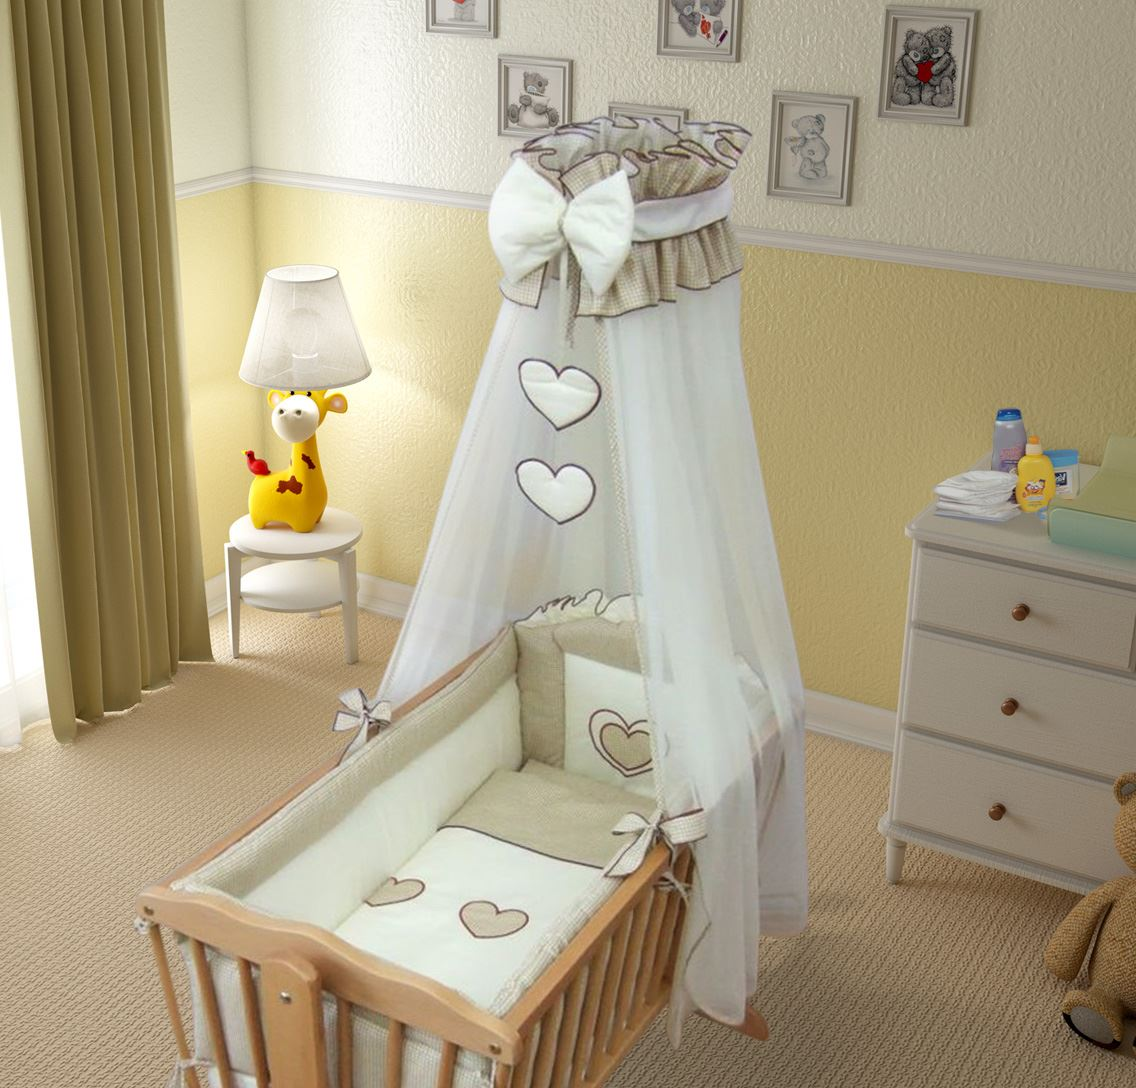 9 st ck wiege baby bettw sche set 90 x 40 cm fassungen swinging ebay. Black Bedroom Furniture Sets. Home Design Ideas